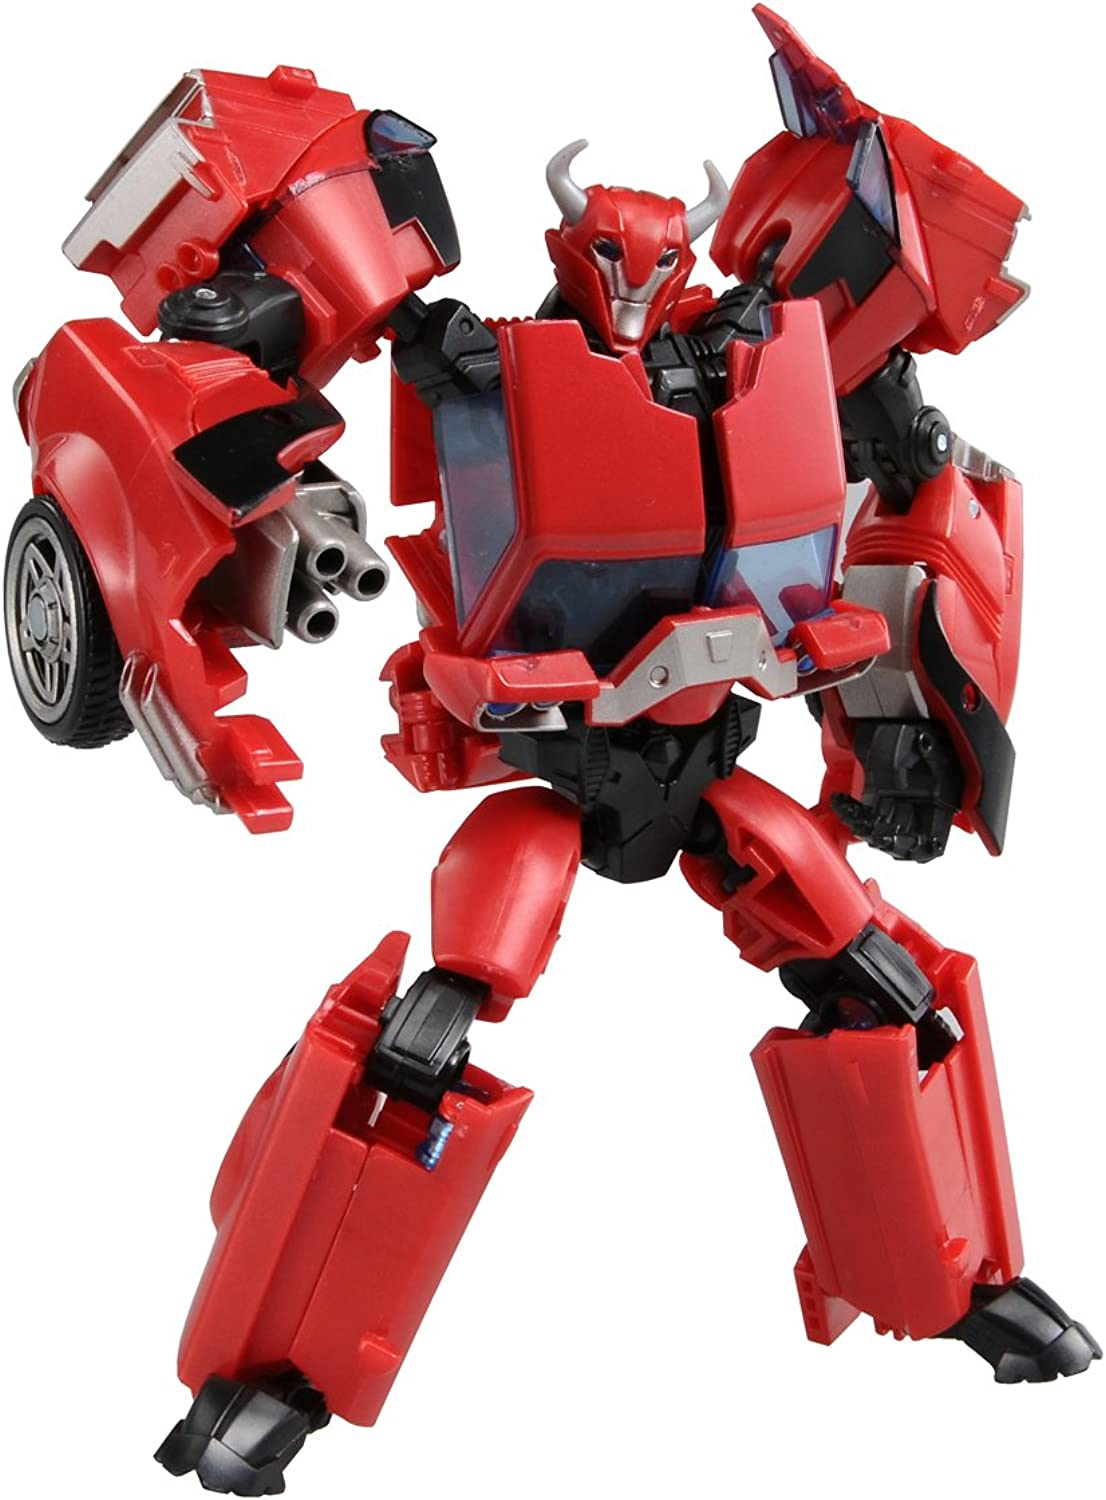 Transformer Prime First Edition Cliffjumper B006D54C7S Gute Qualität  | Authentische Garantie